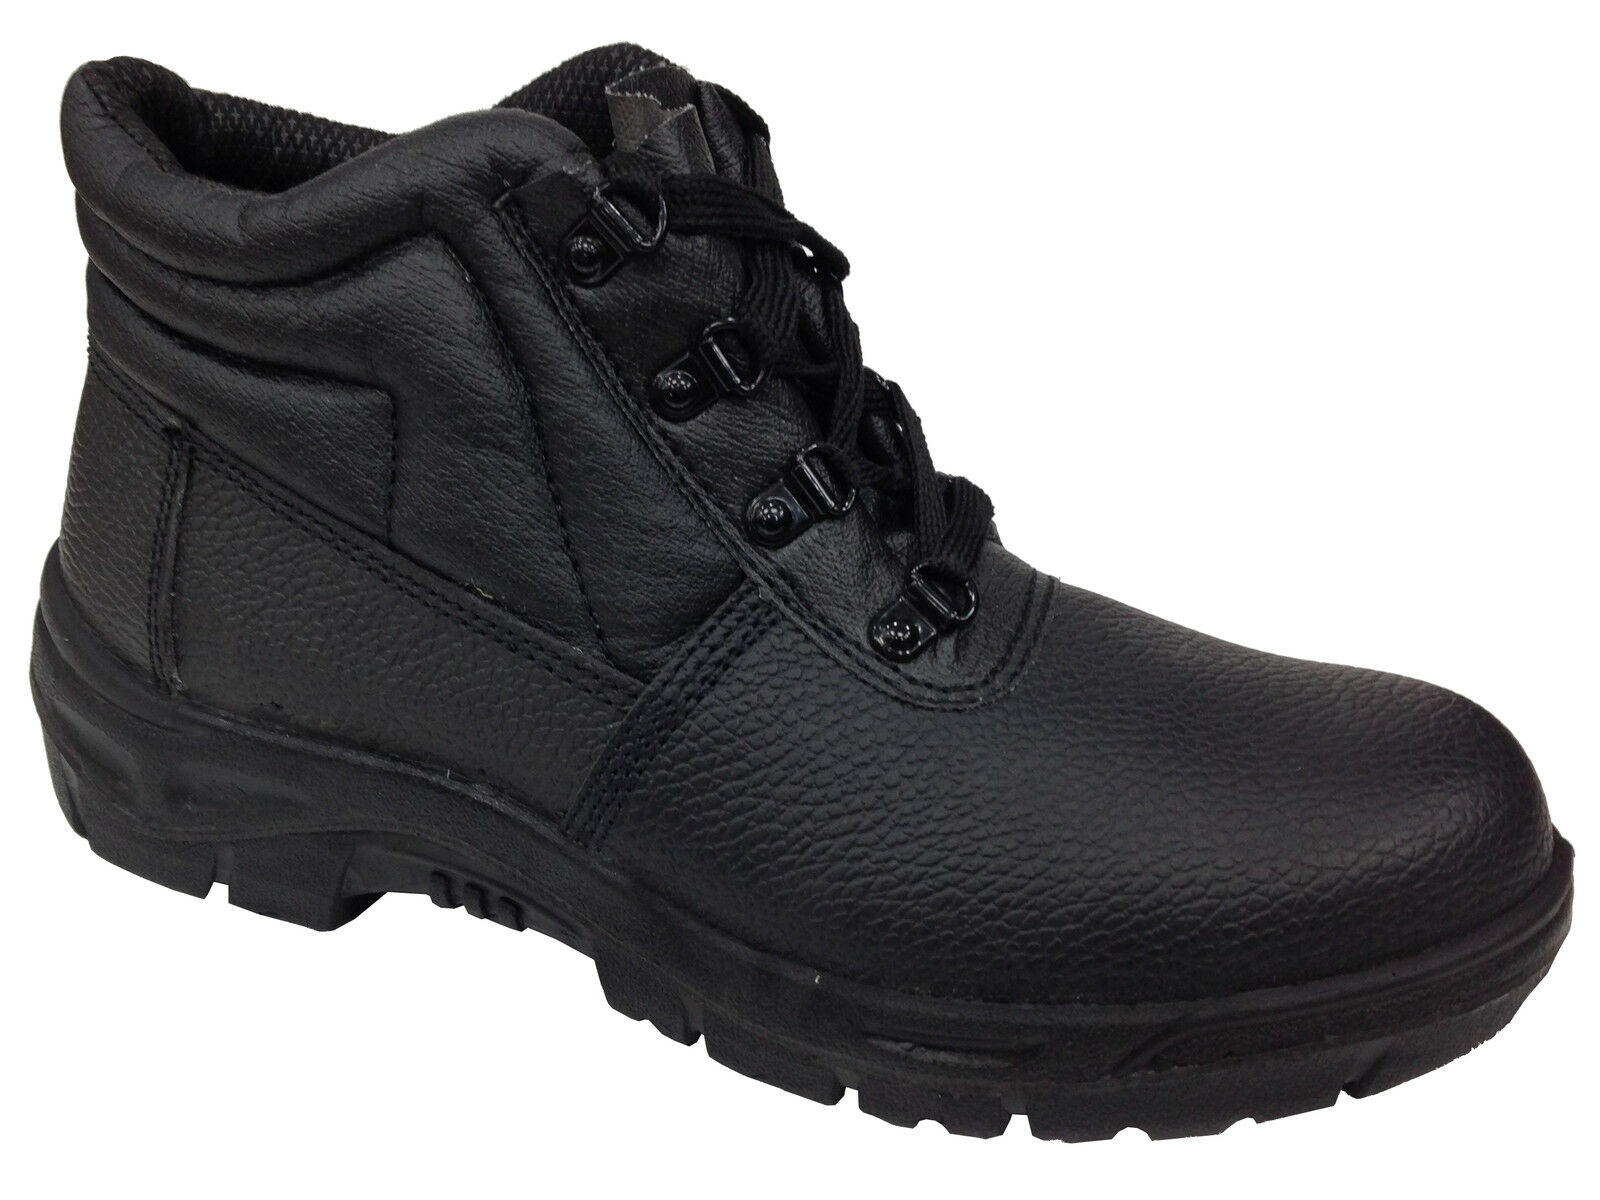 Unisex Black Genuine Leather Metal Toe Cap Safety Padded Warehouse Work Boots